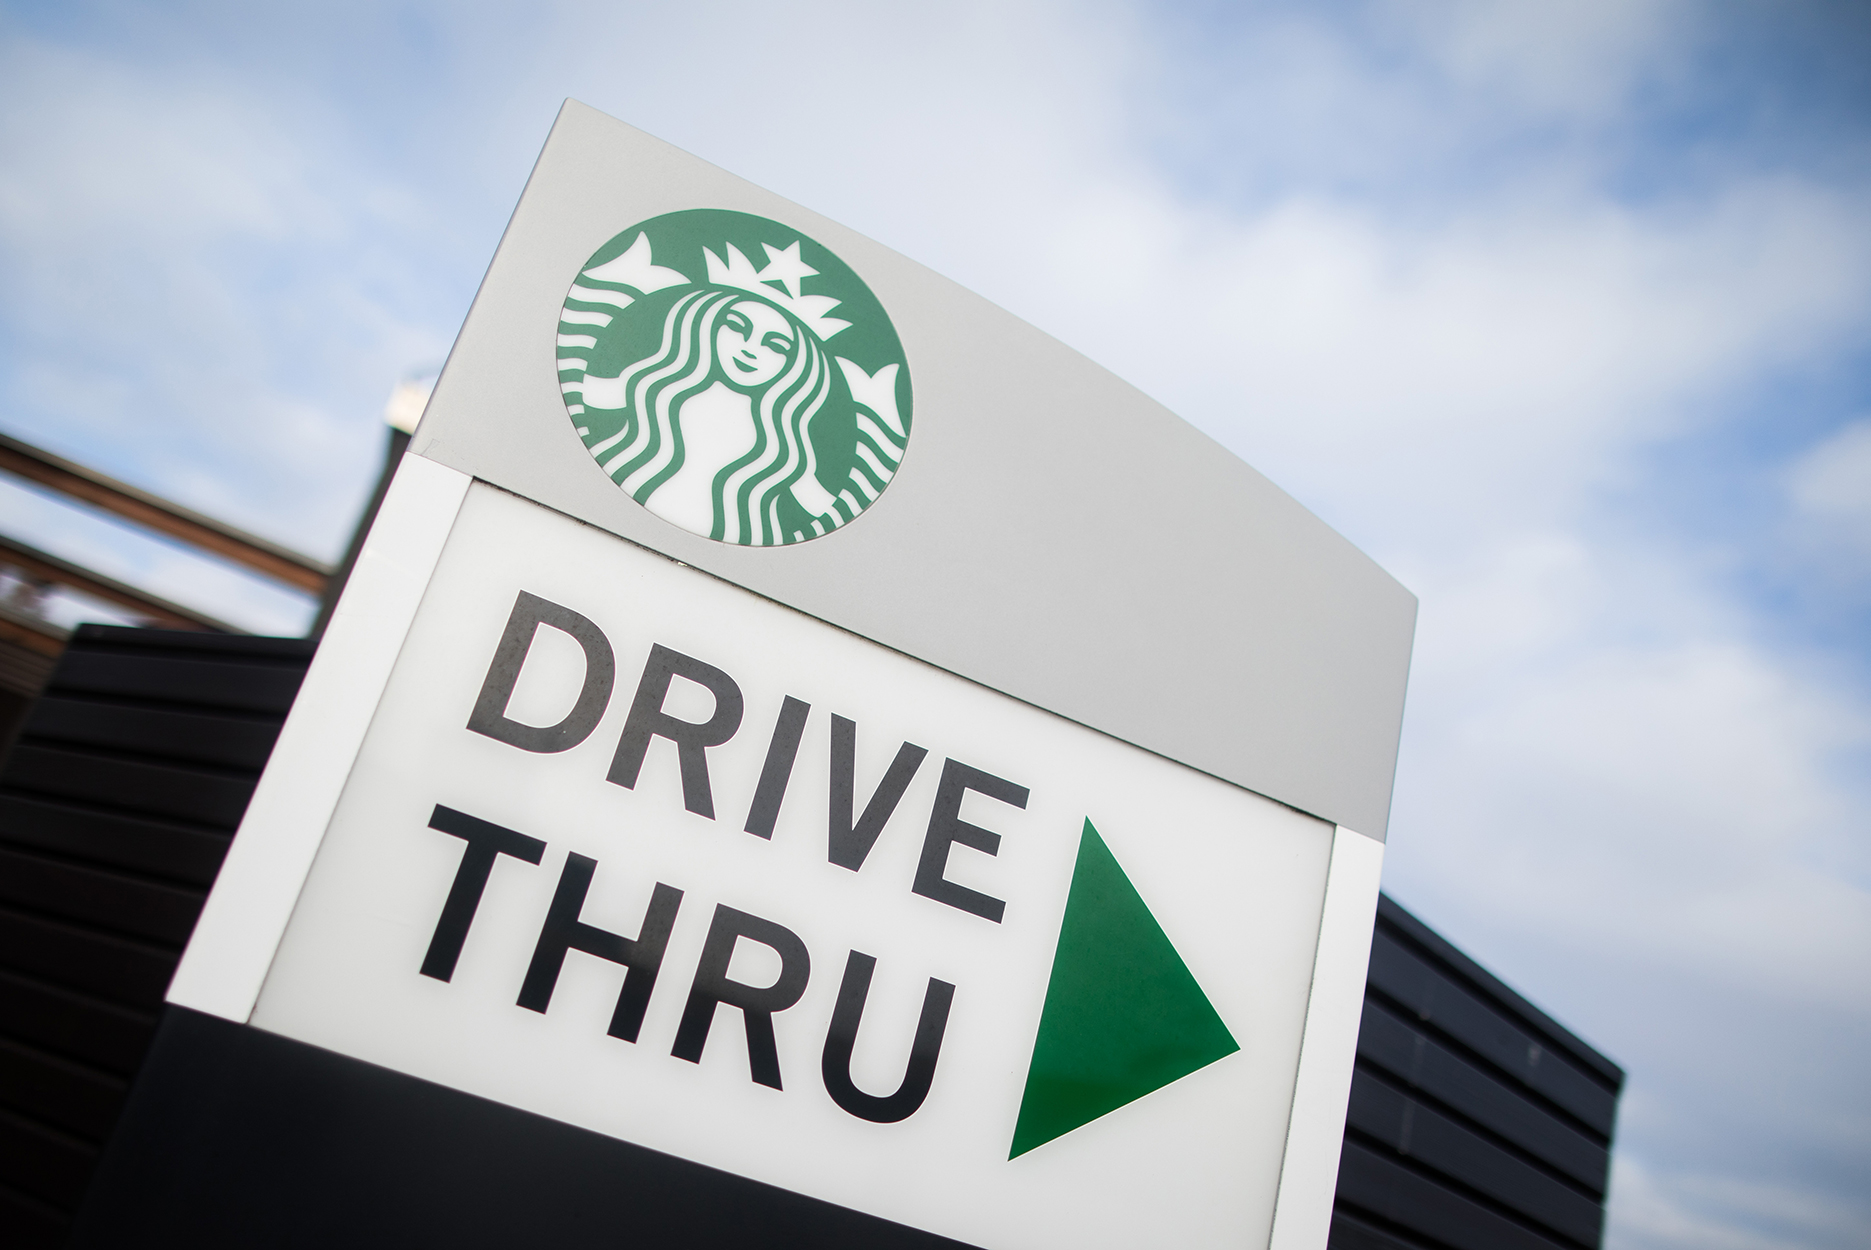 A Starbucks drive thru sign